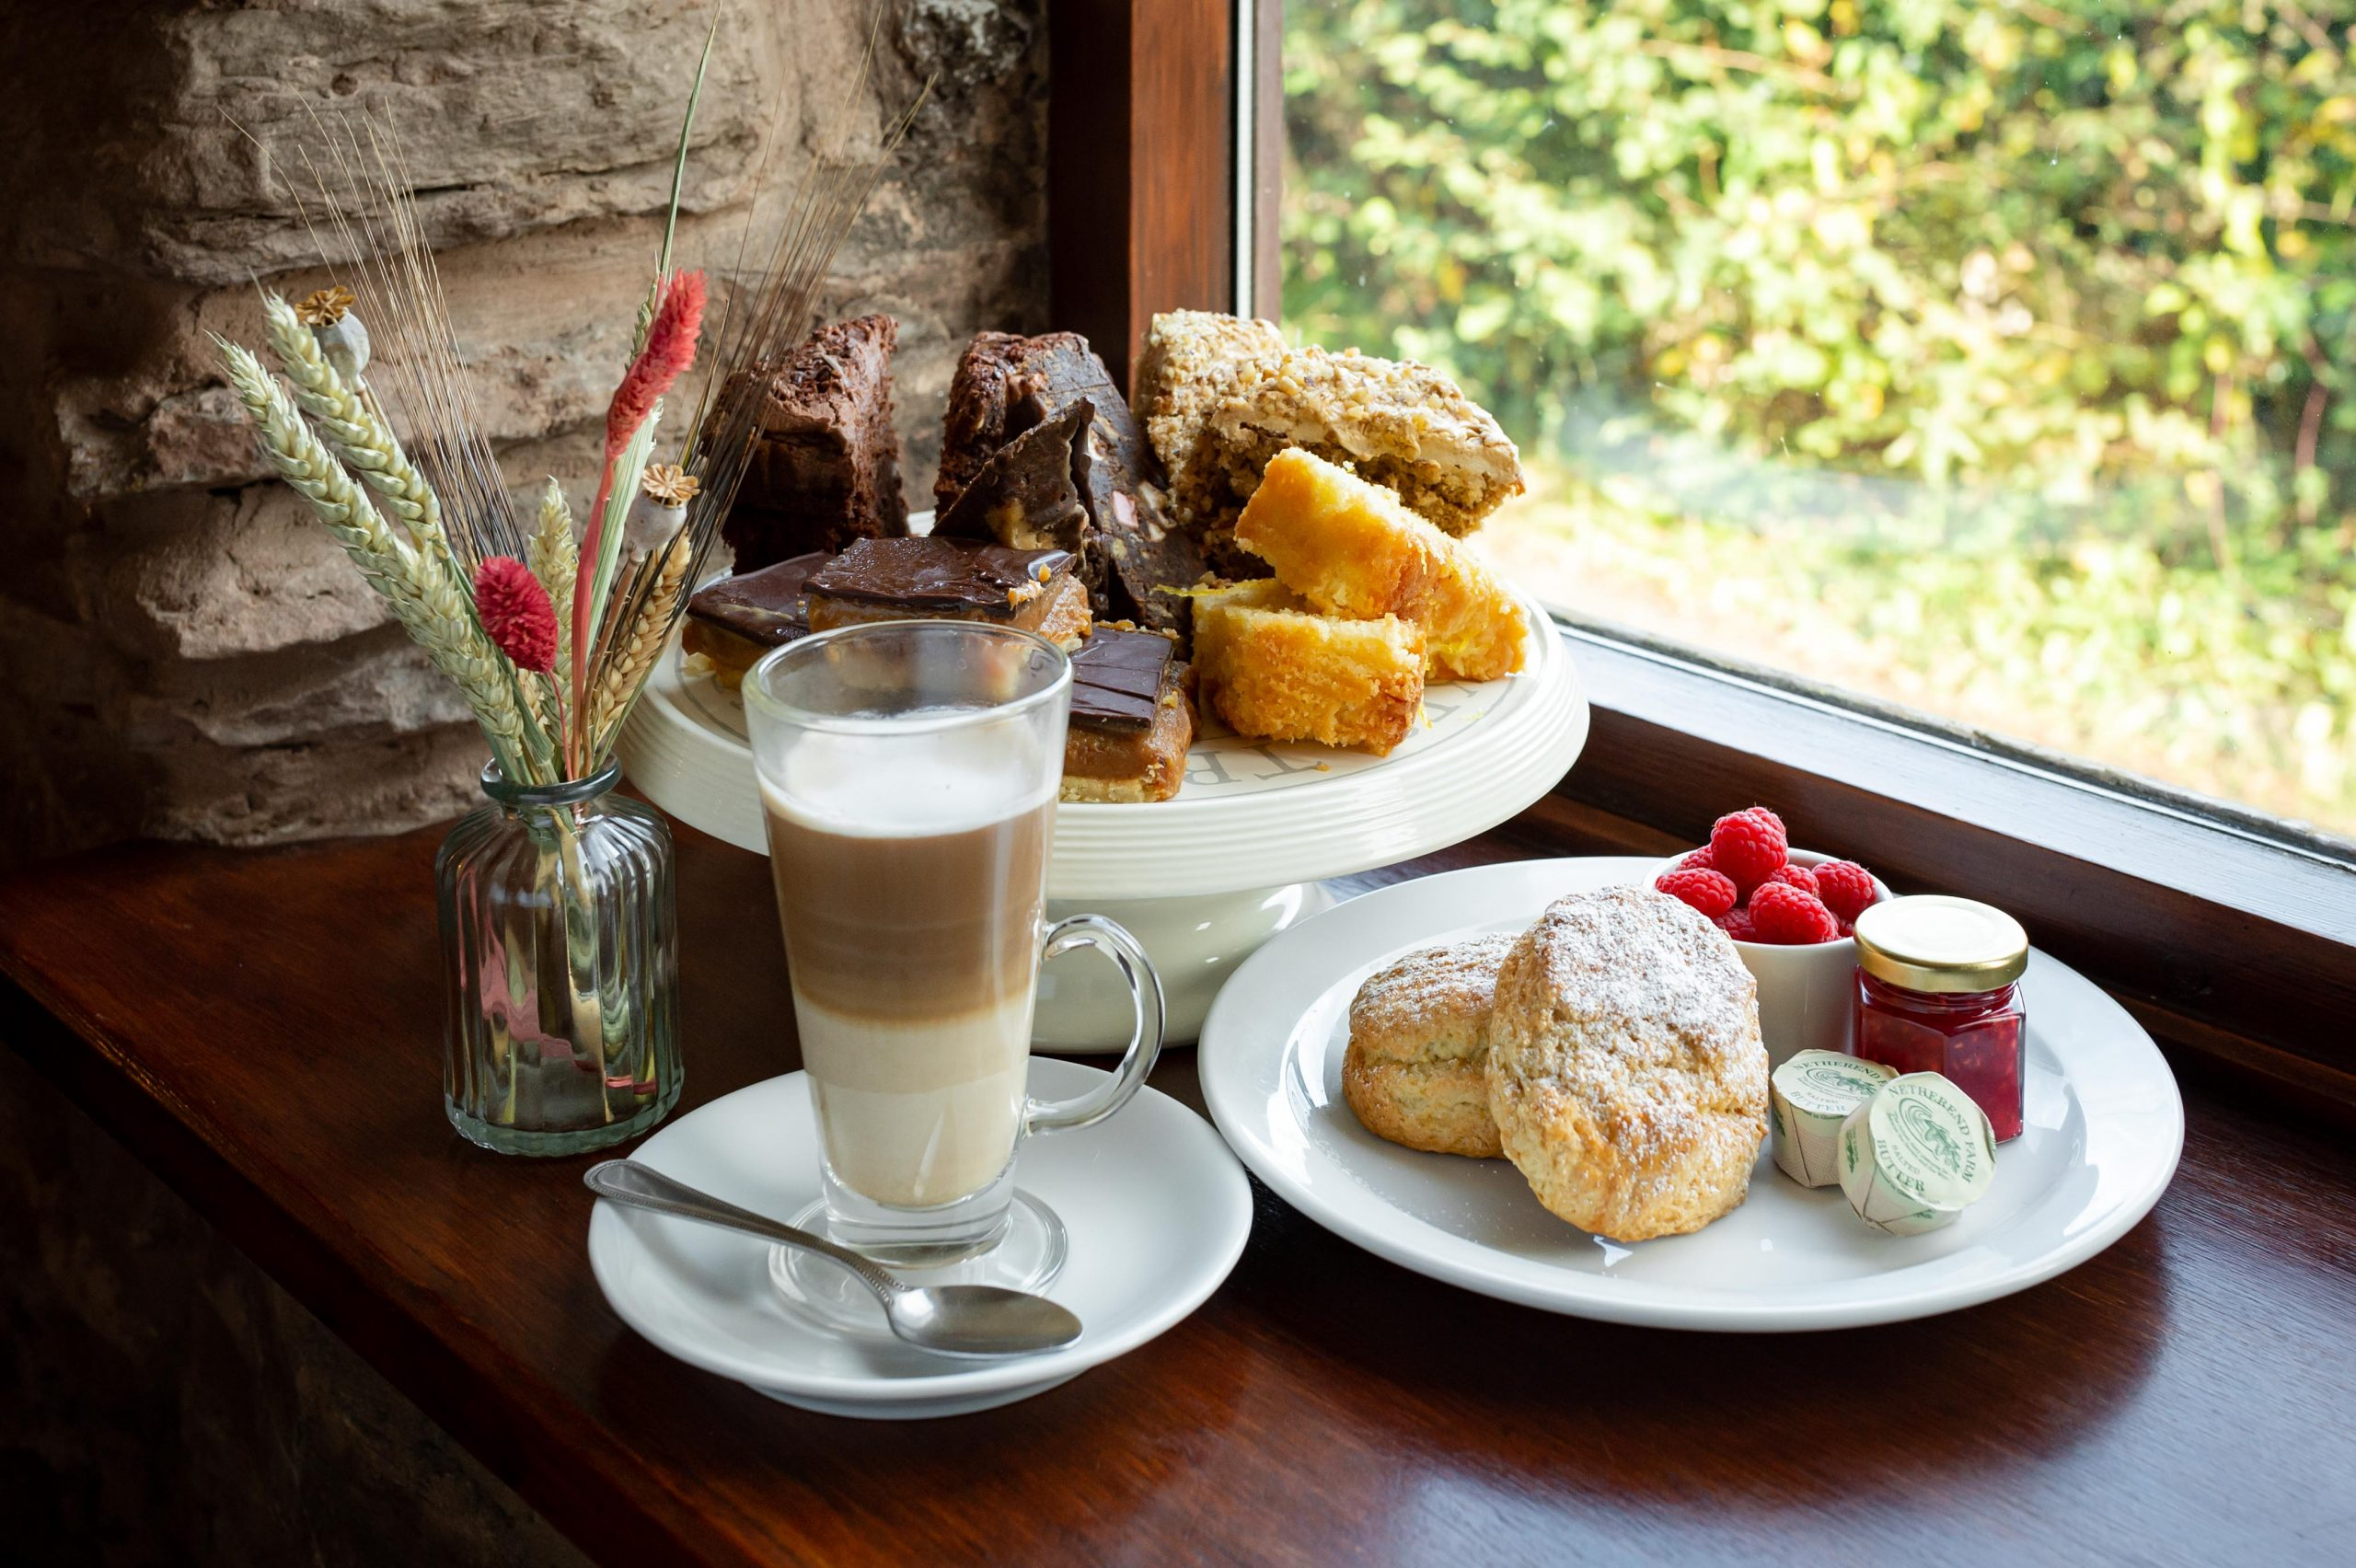 Cakes and scones on a window sill